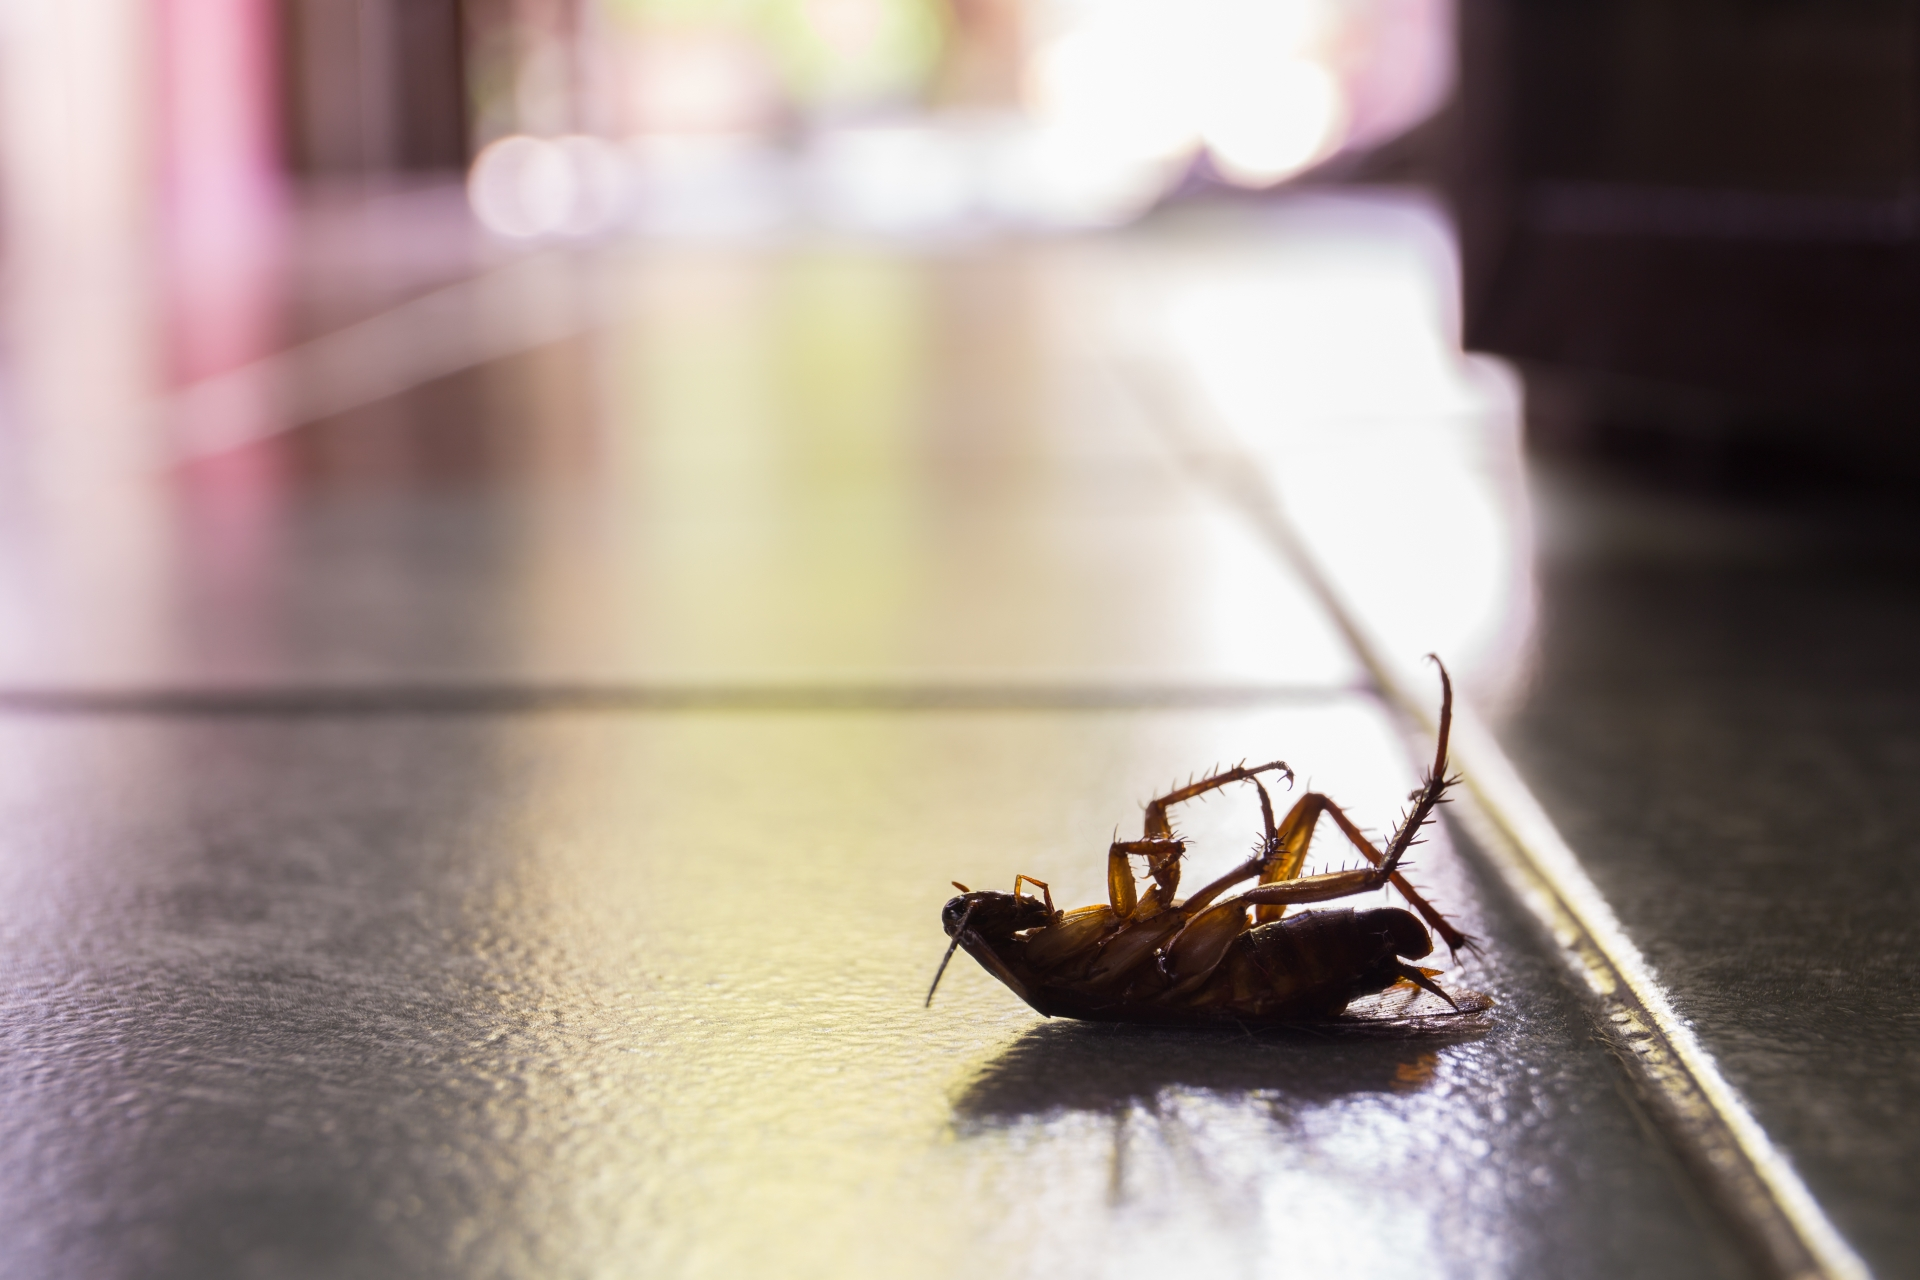 Cockroach Control, Pest Control in Ewell, Stoneleigh, KT17. Call Now 020 8166 9746